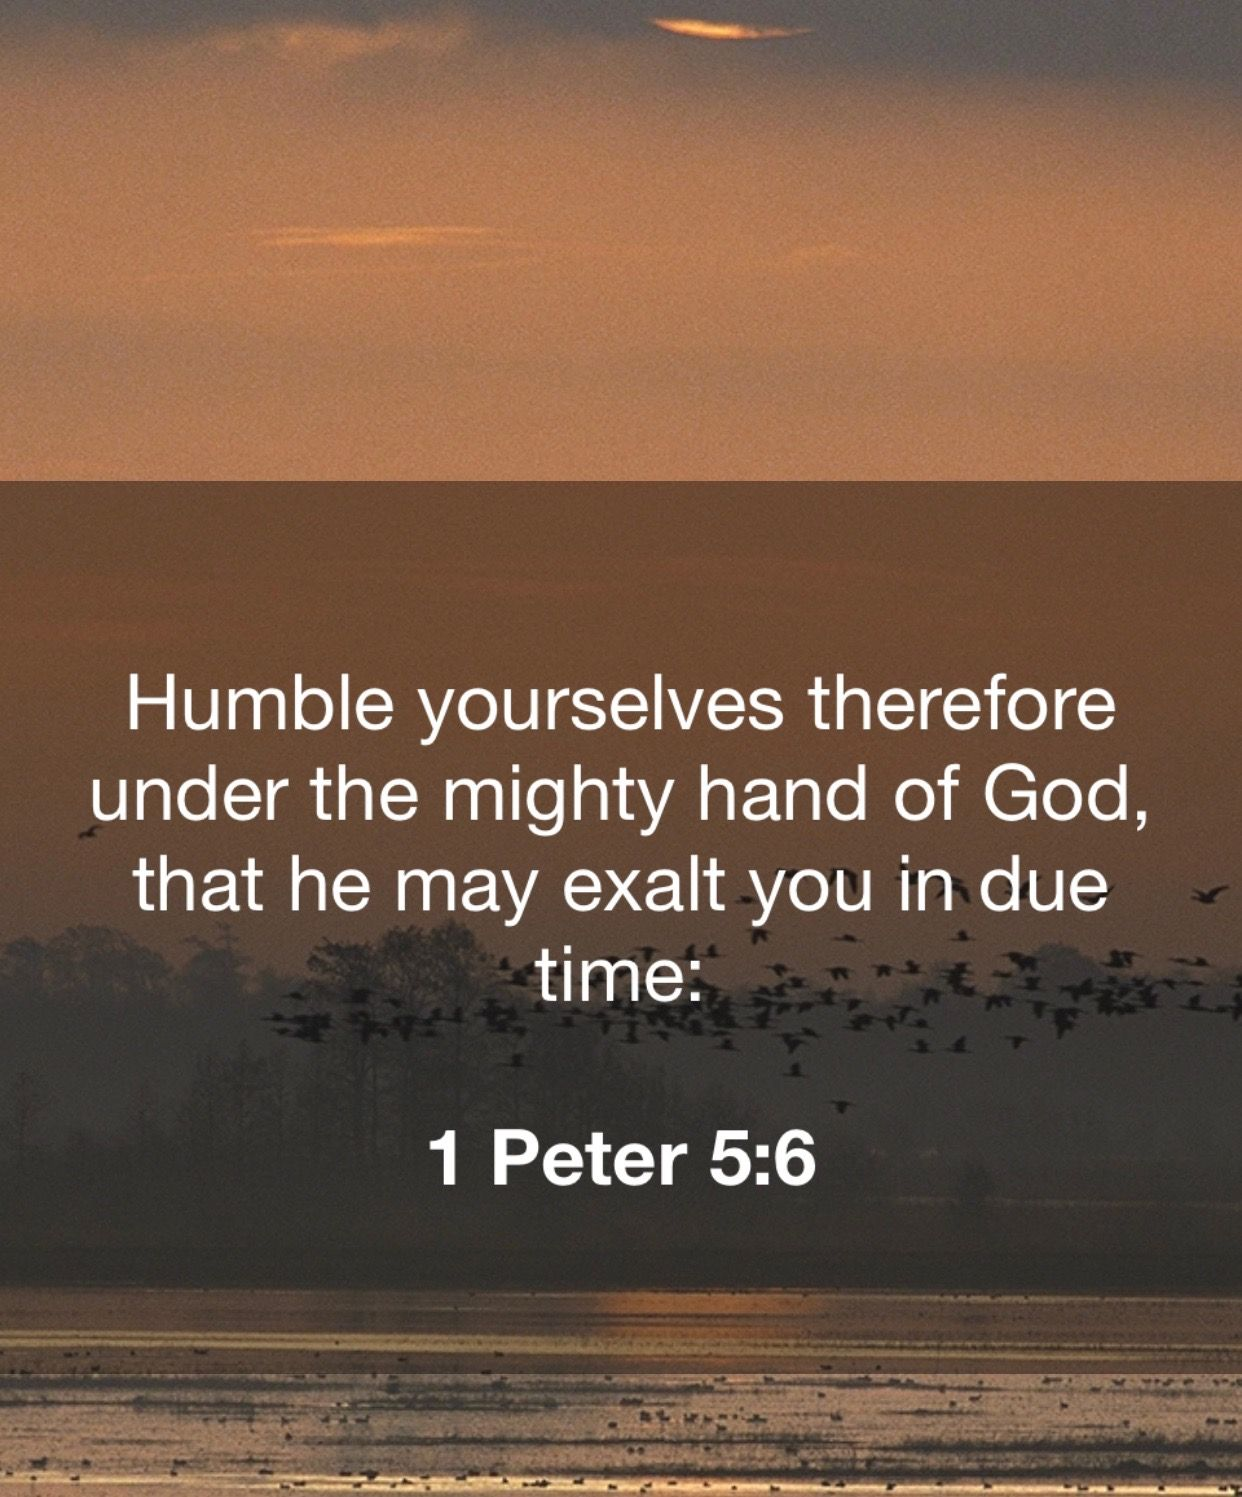 Pin by Brenda Gaskins on Bible Humble yourself, 1 peter